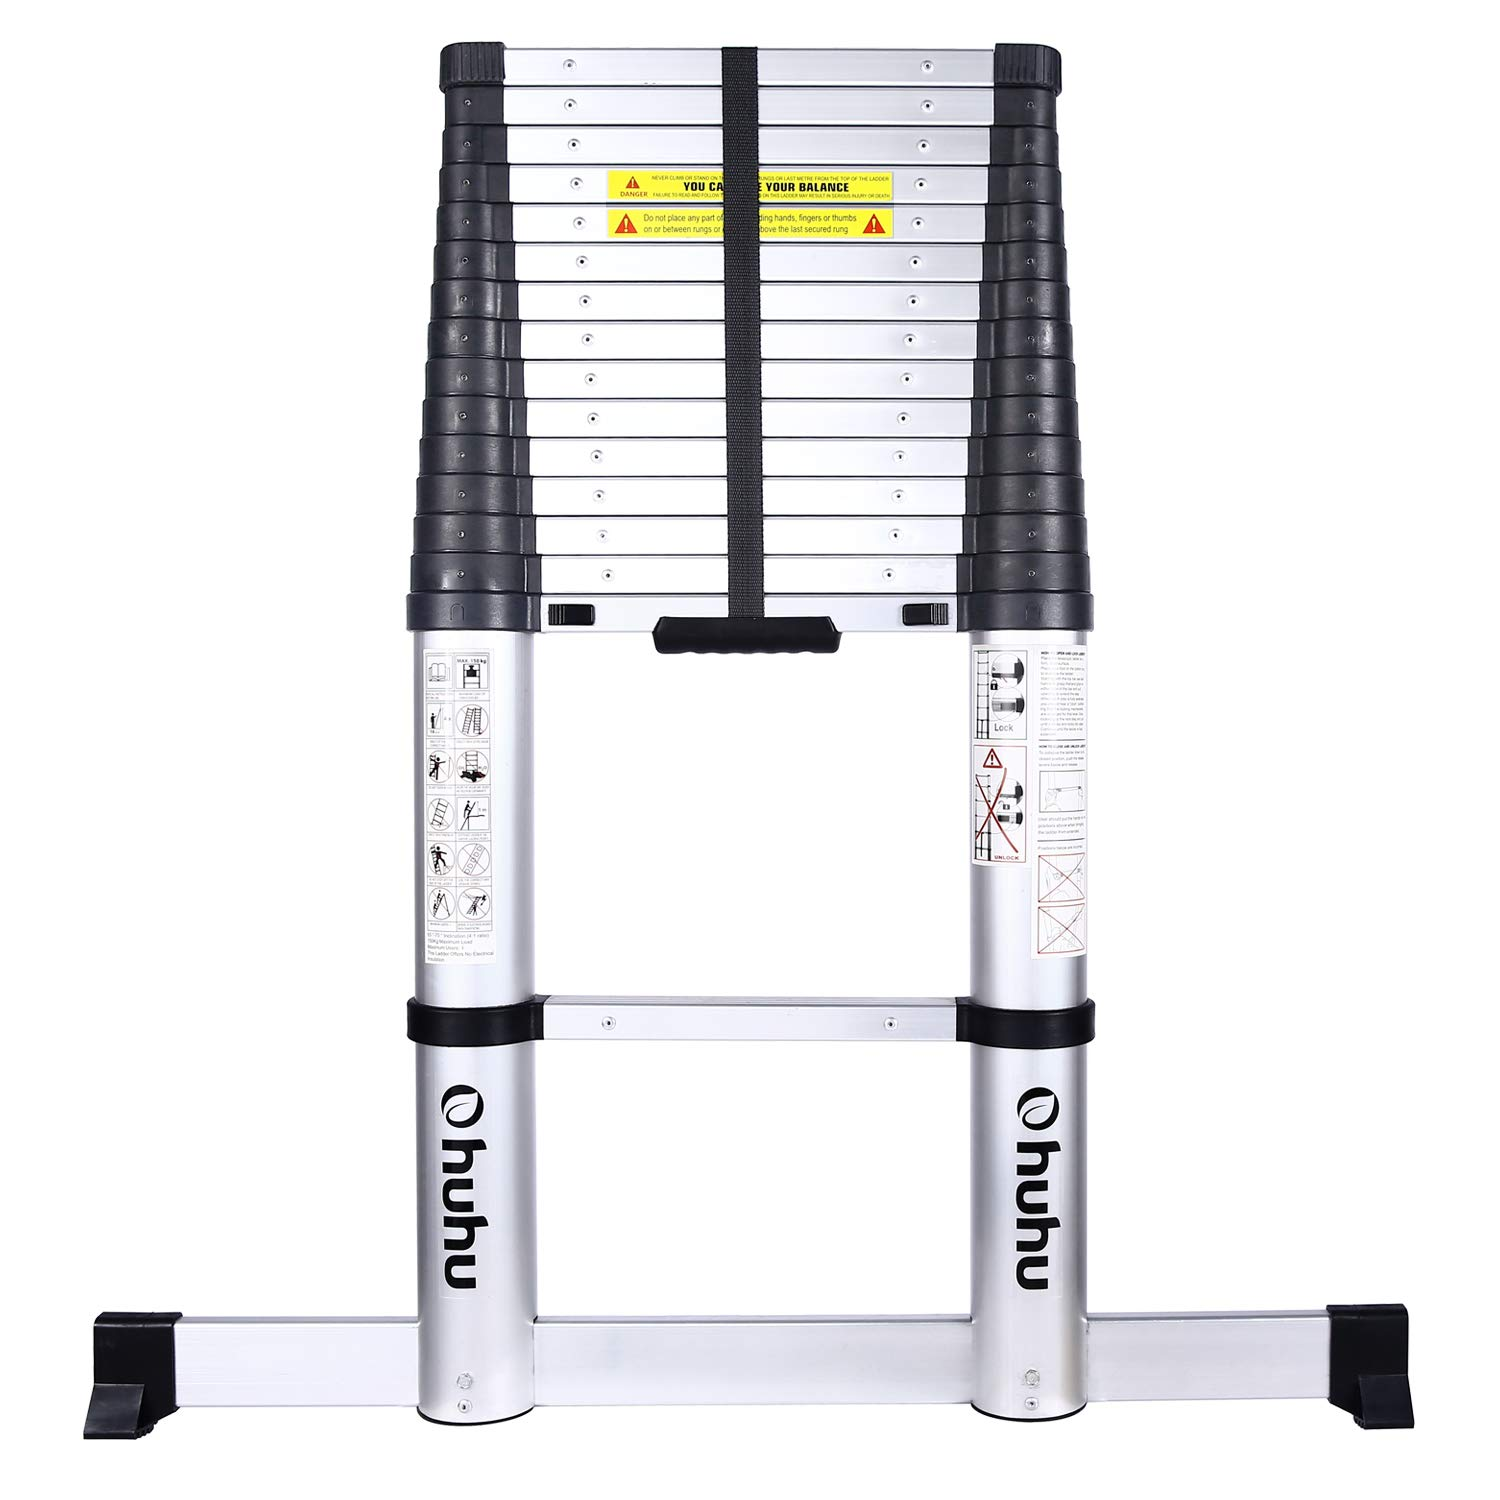 Ohuhu 15.5 FT Telescoping Ladder with Stabilizer Bar, EN131 Certified Convenient ONE-Button RETRACTION Aluminum Telescopic Extension Ladder, Non-Slip Extendable Ladder, 330 Pound Capacity